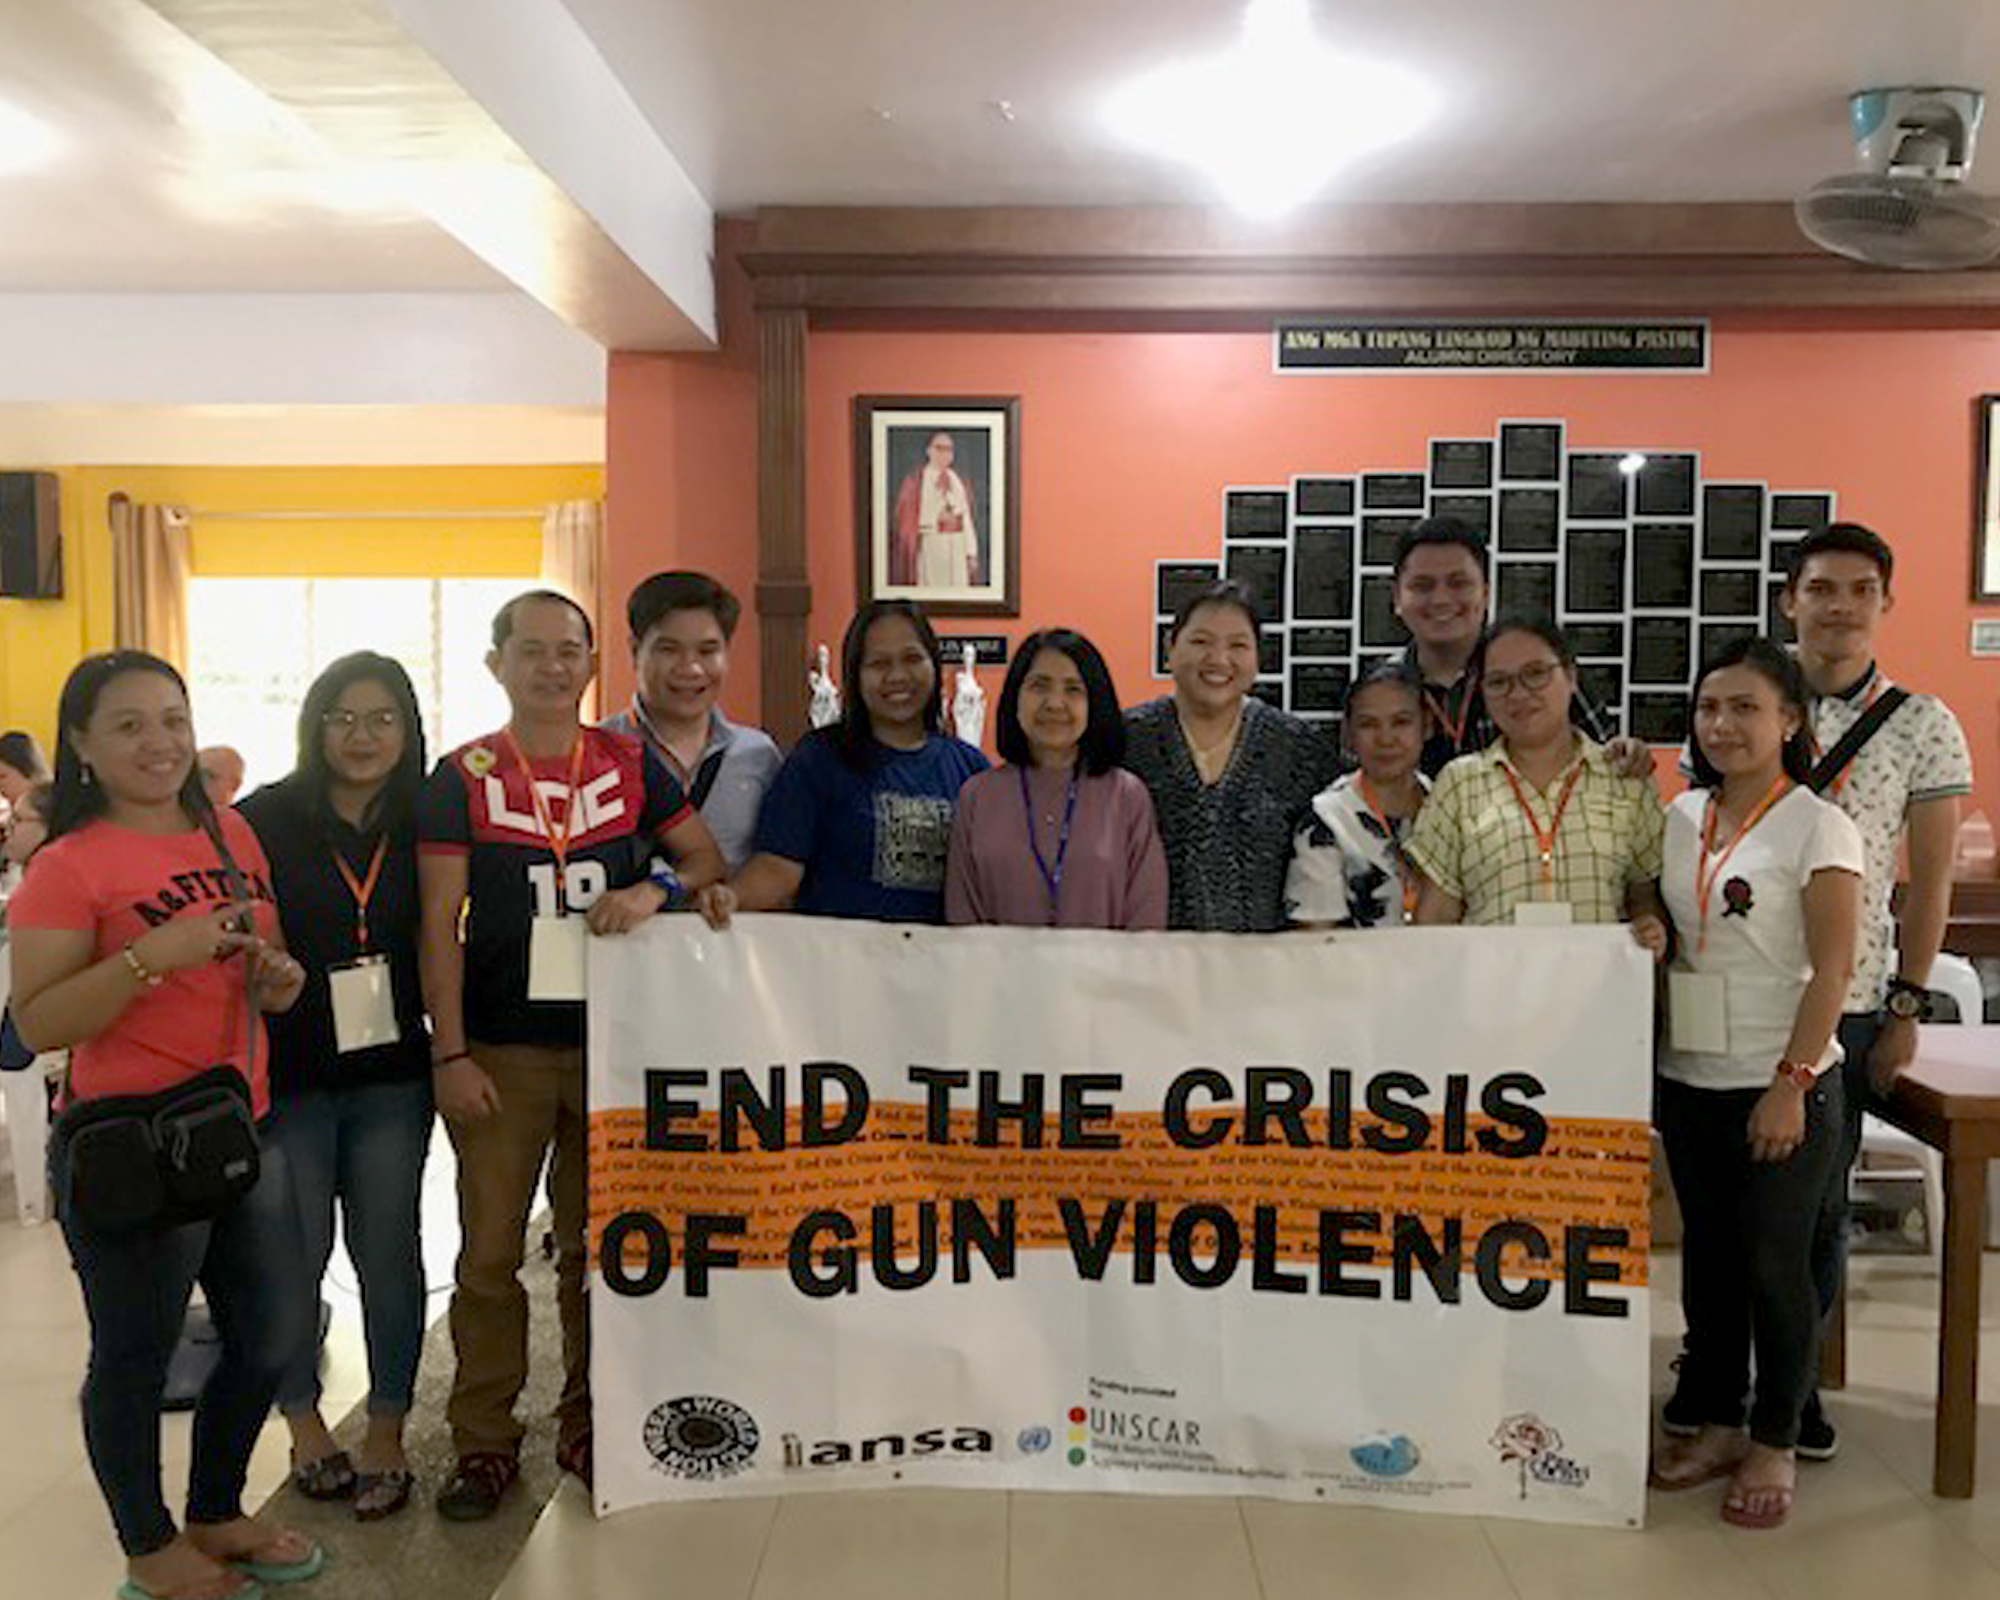 CPE observes Global Week of Action against Gun Violence